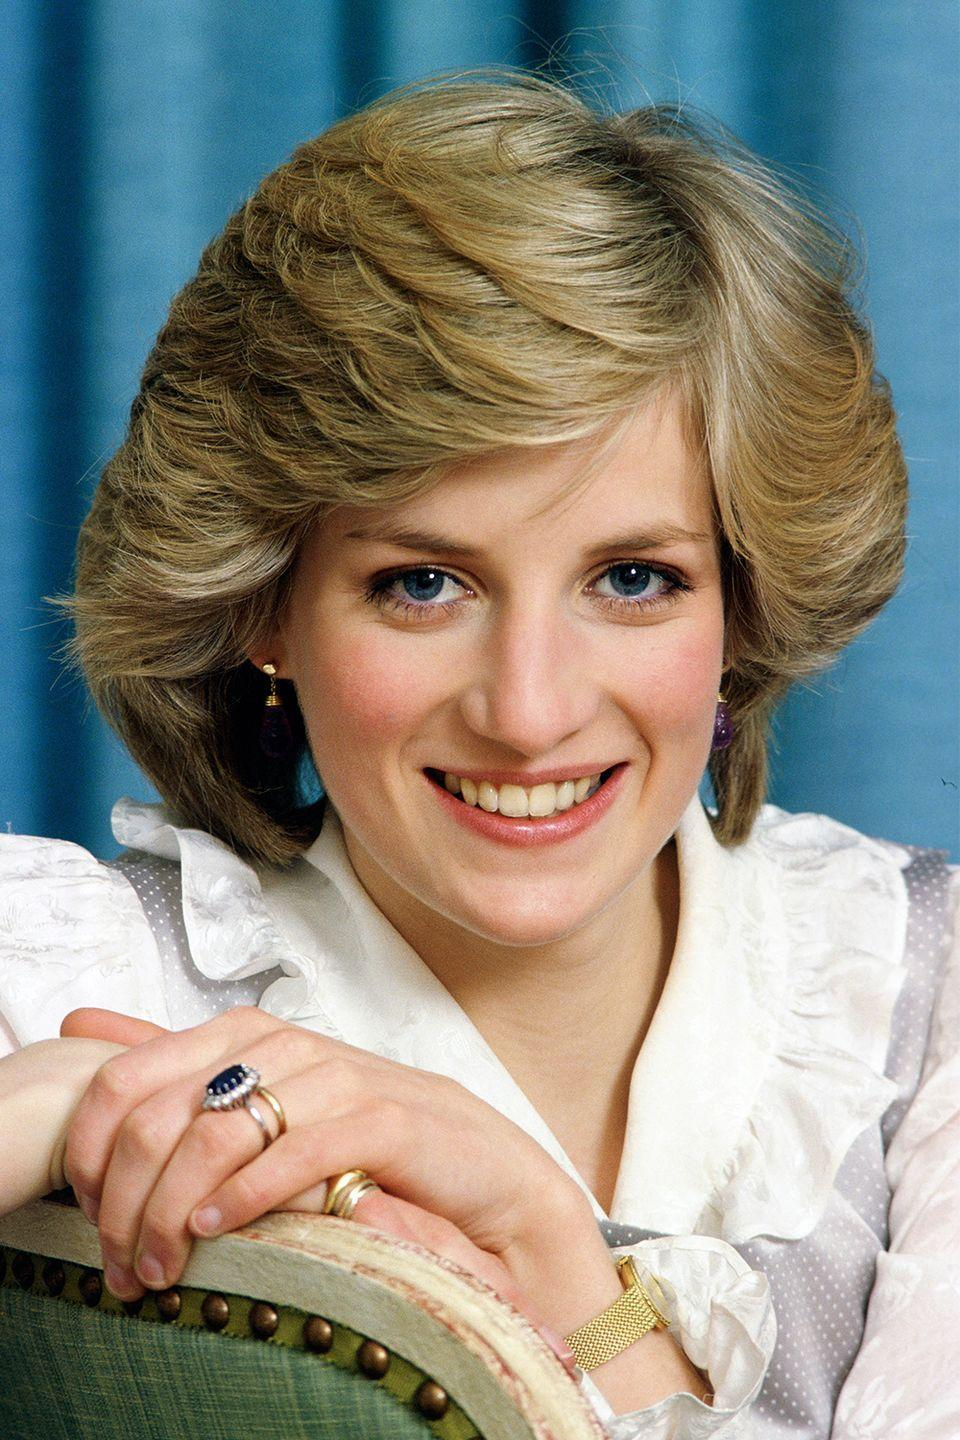 """<p>Princess Diana gave a shocking interview with BBC journalist Martin Bashir, discussing her issues with bulimia and postpartum depression. The princess also revealed that <a href=""""http://www.thisisinsider.com/biggest-royal-family-scandals-2016-12#princess-diana-and-an-alleged-lover-were-secretly-recorded-on-the-phone-4"""" rel=""""nofollow noopener"""" target=""""_blank"""" data-ylk=""""slk:she knew about Prince Charles and Camilla's affair"""" class=""""link rapid-noclick-resp"""">she knew about Prince Charles and Camilla's affair</a>, and even talked about her own love affair with her riding instructor, James Hewitt. She and Charles were divorced a year later.</p>"""